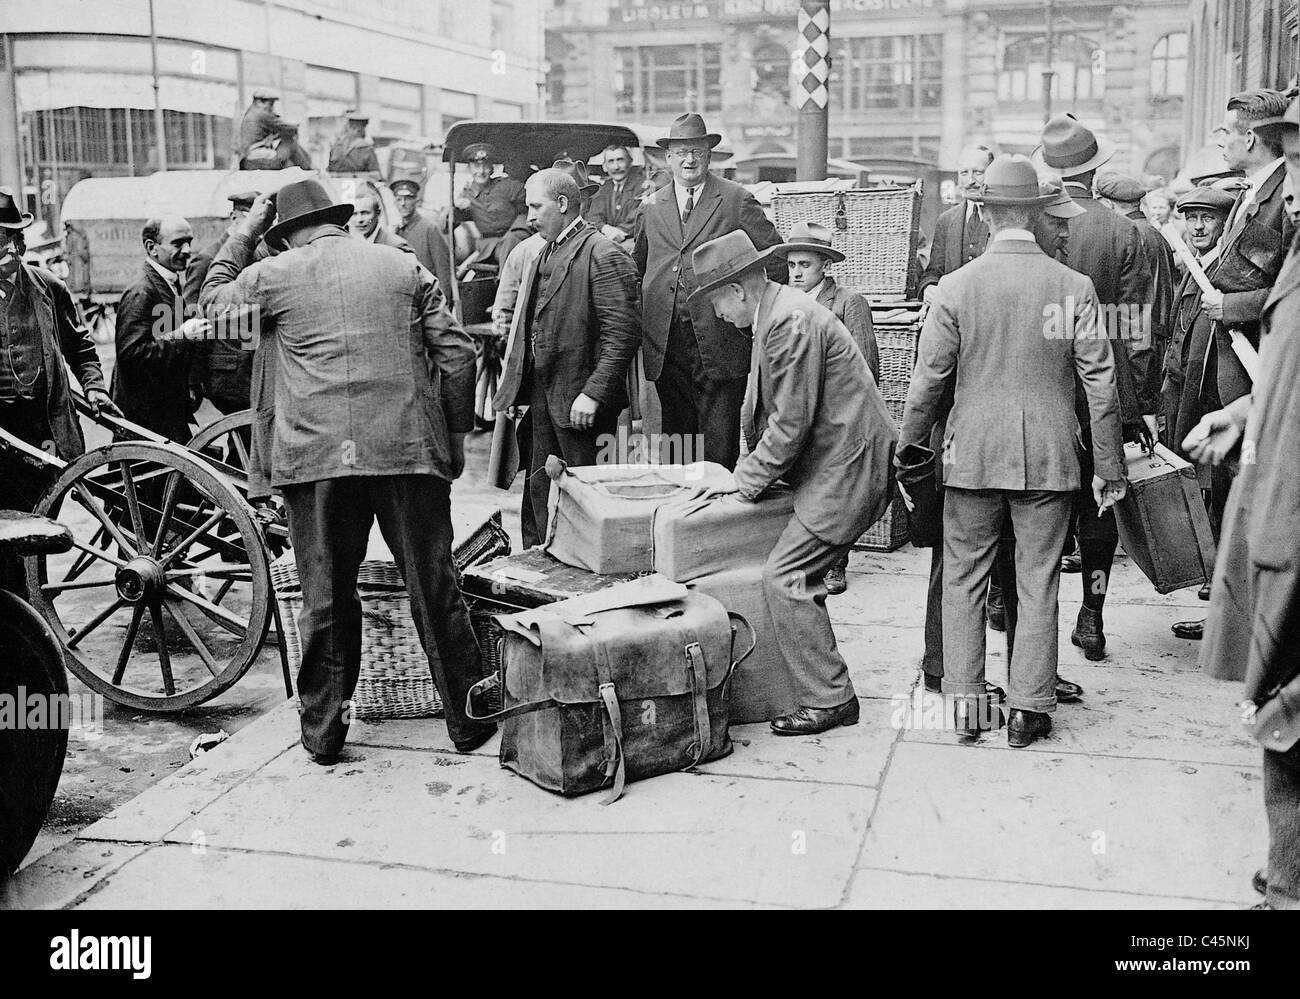 Cash messengers in front of the Reichsbank during the inflation, 1923 - Stock Image